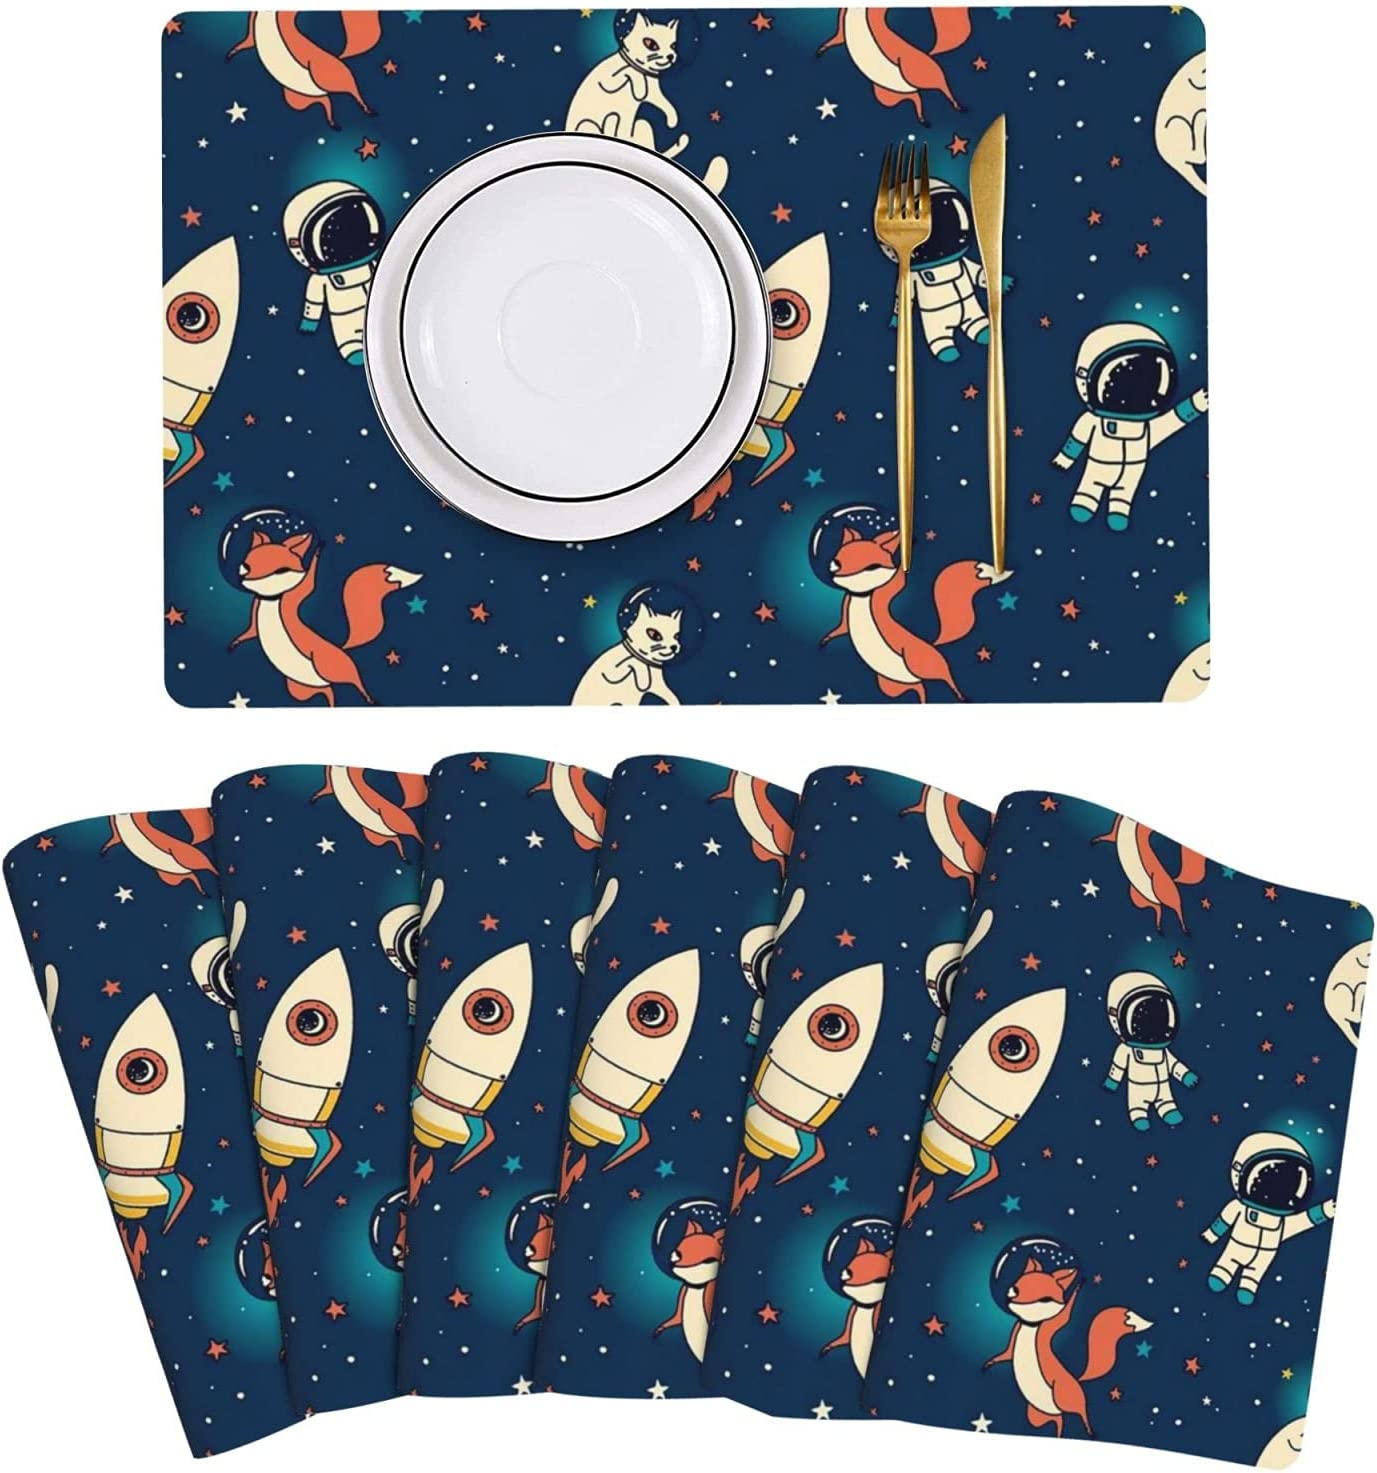 Cosmic Cute Rockets Cheap sale Foxes and Cats Leather Mats Placemat Ranking TOP12 Table S